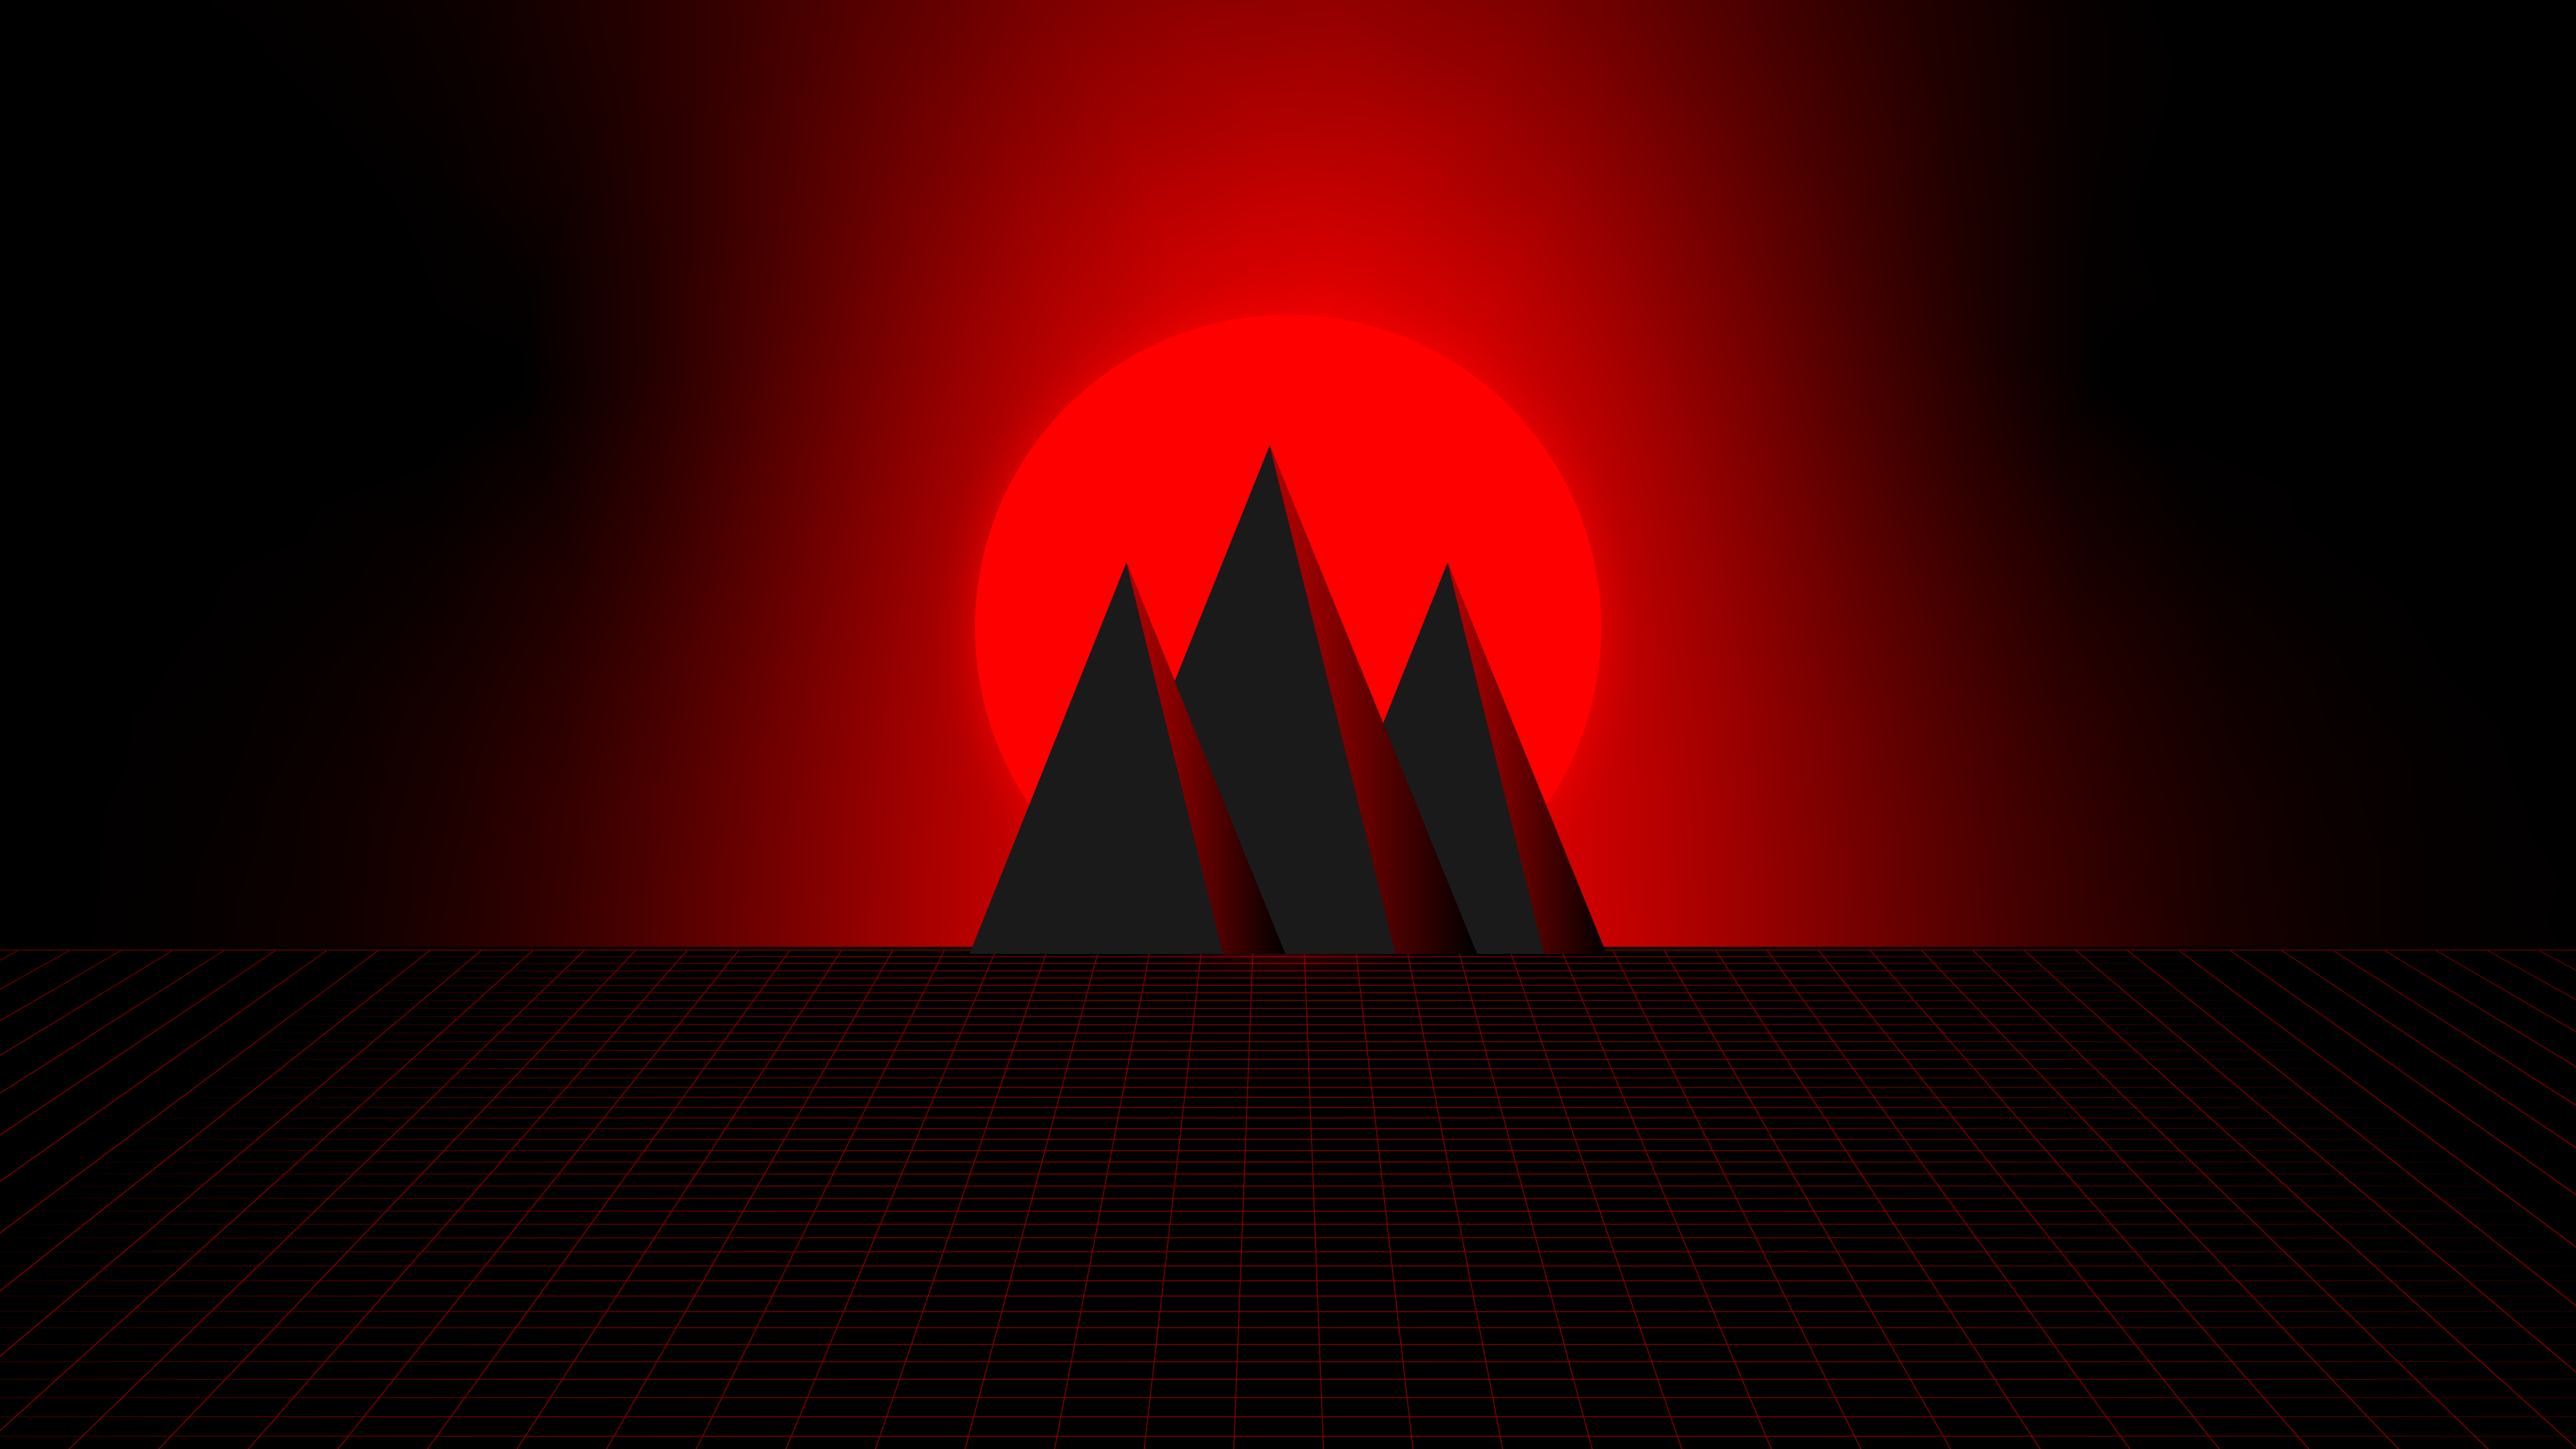 Synthwave 4K wallpapers for your desktop or mobile screen ...